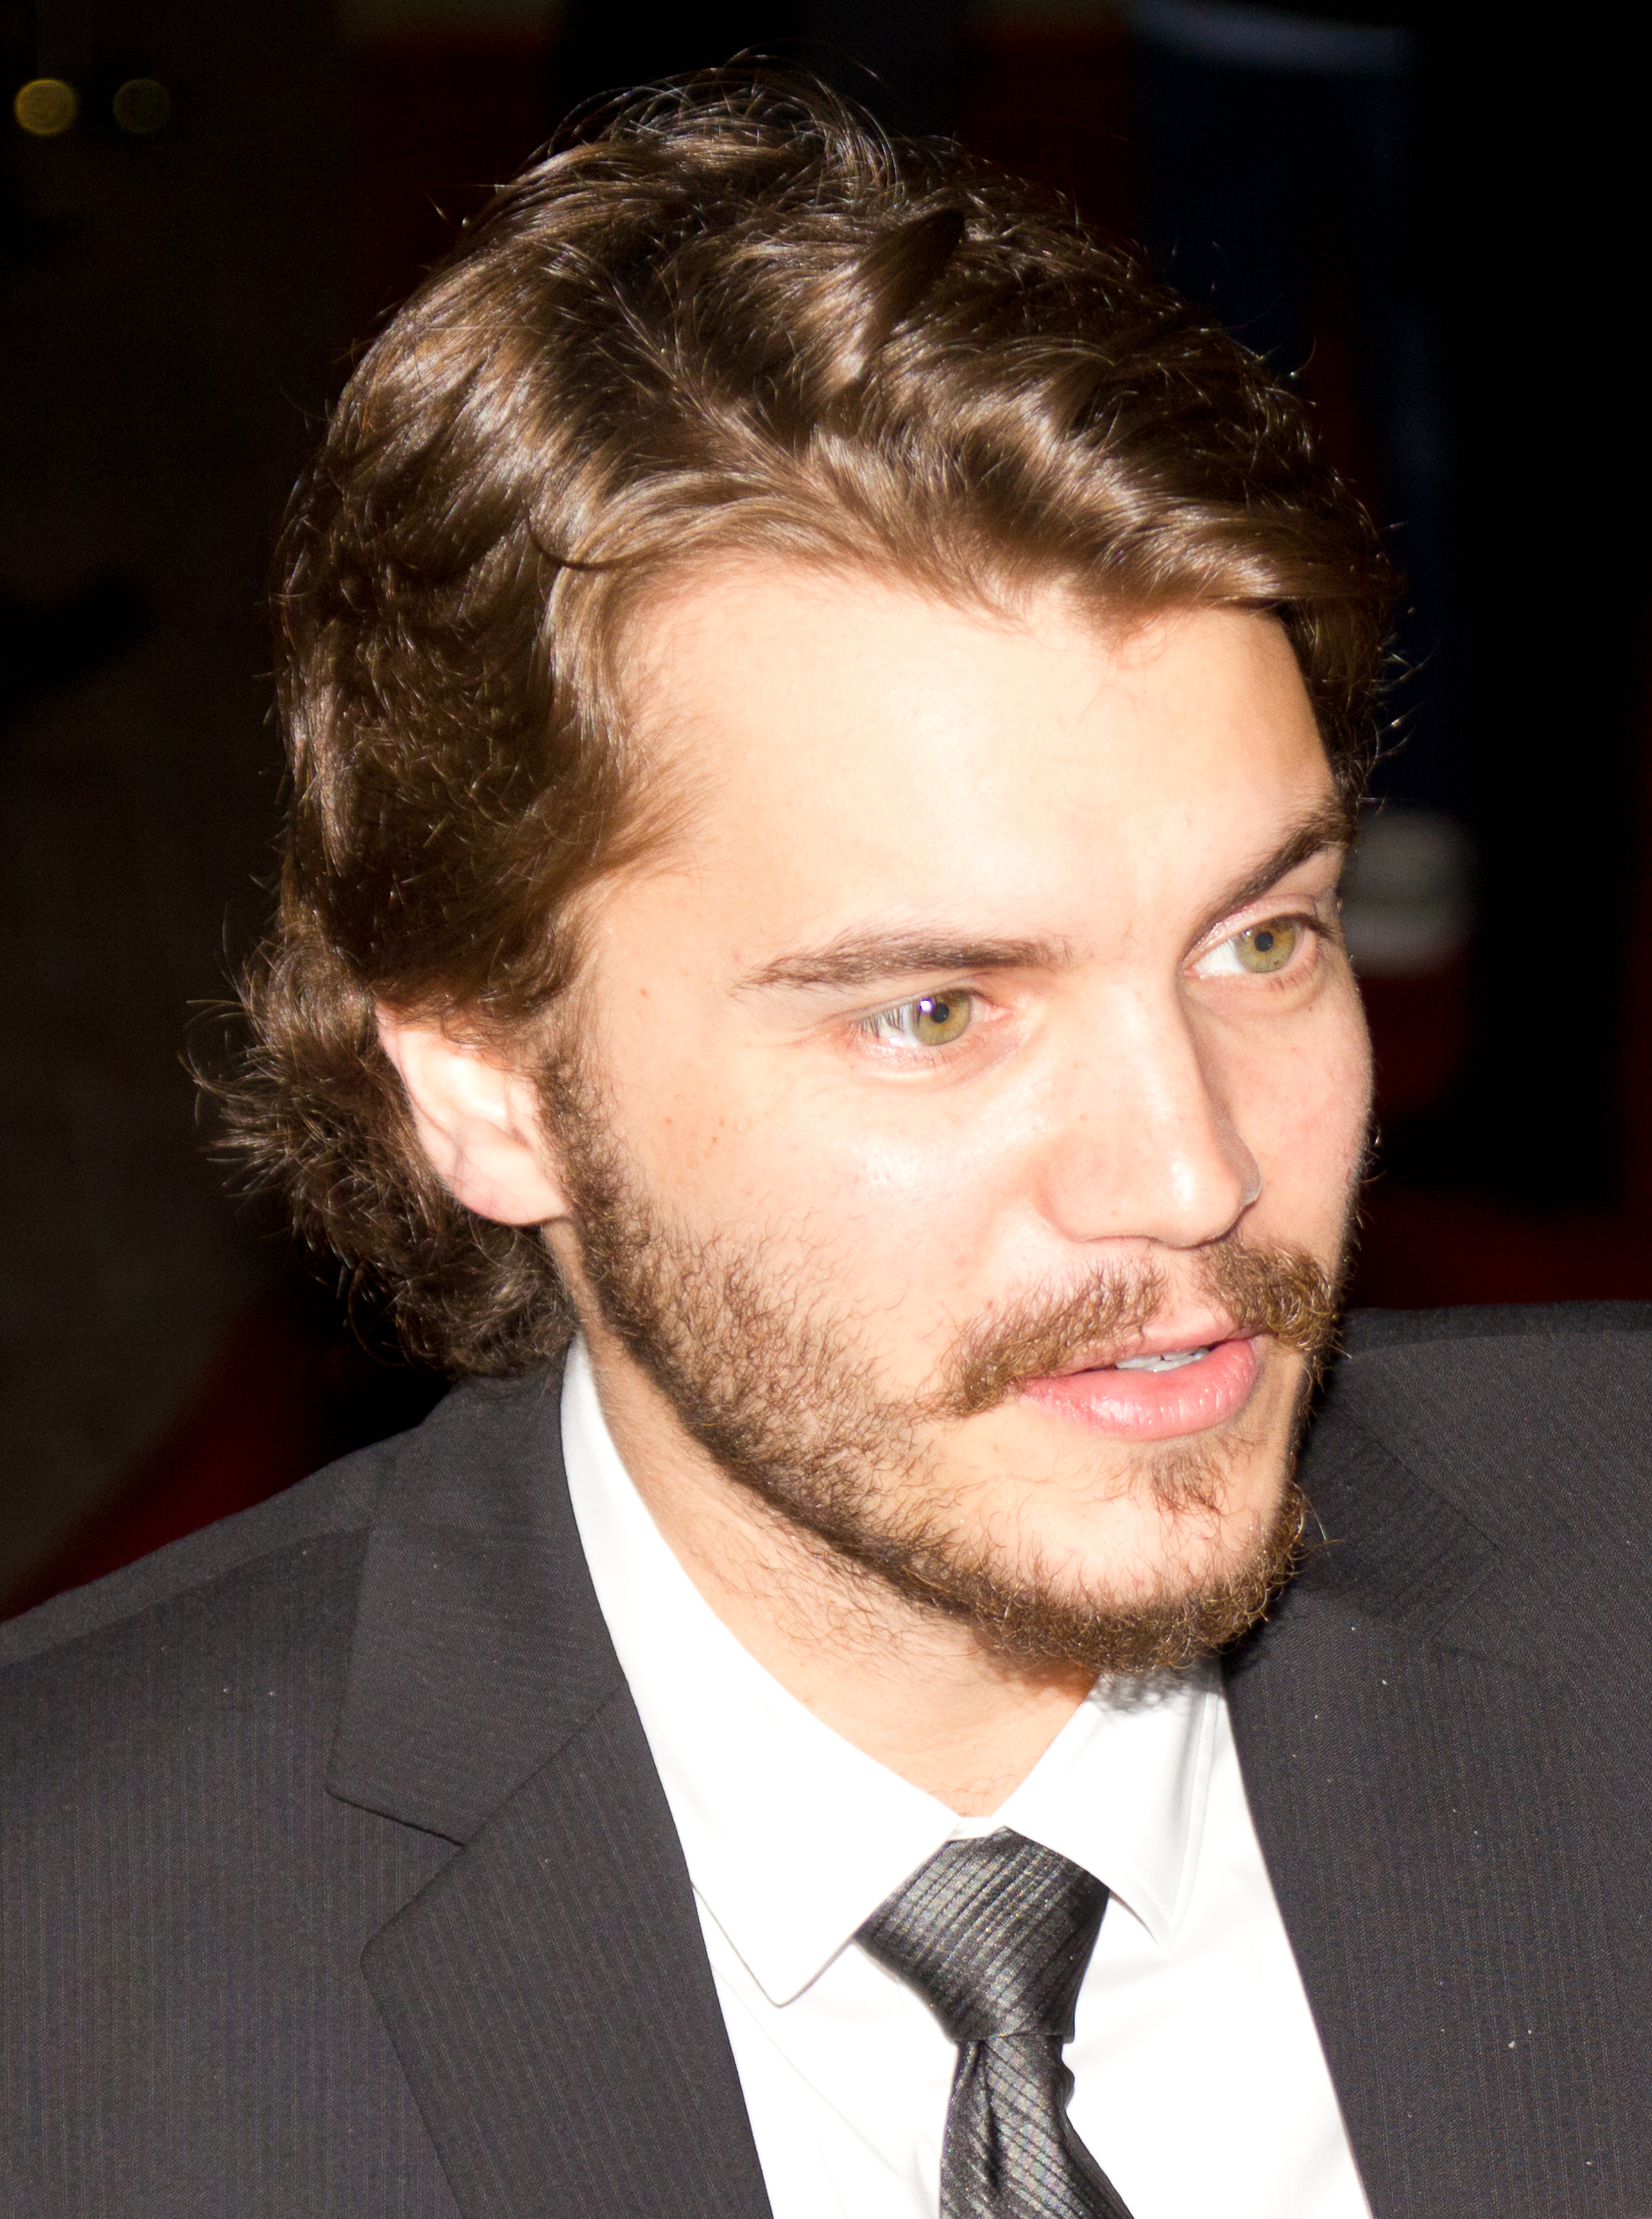 The 33-year old son of father David M. Hirsch and mother Margaret Esther Davenport, 171 cm tall Emile Hirsch in 2018 photo